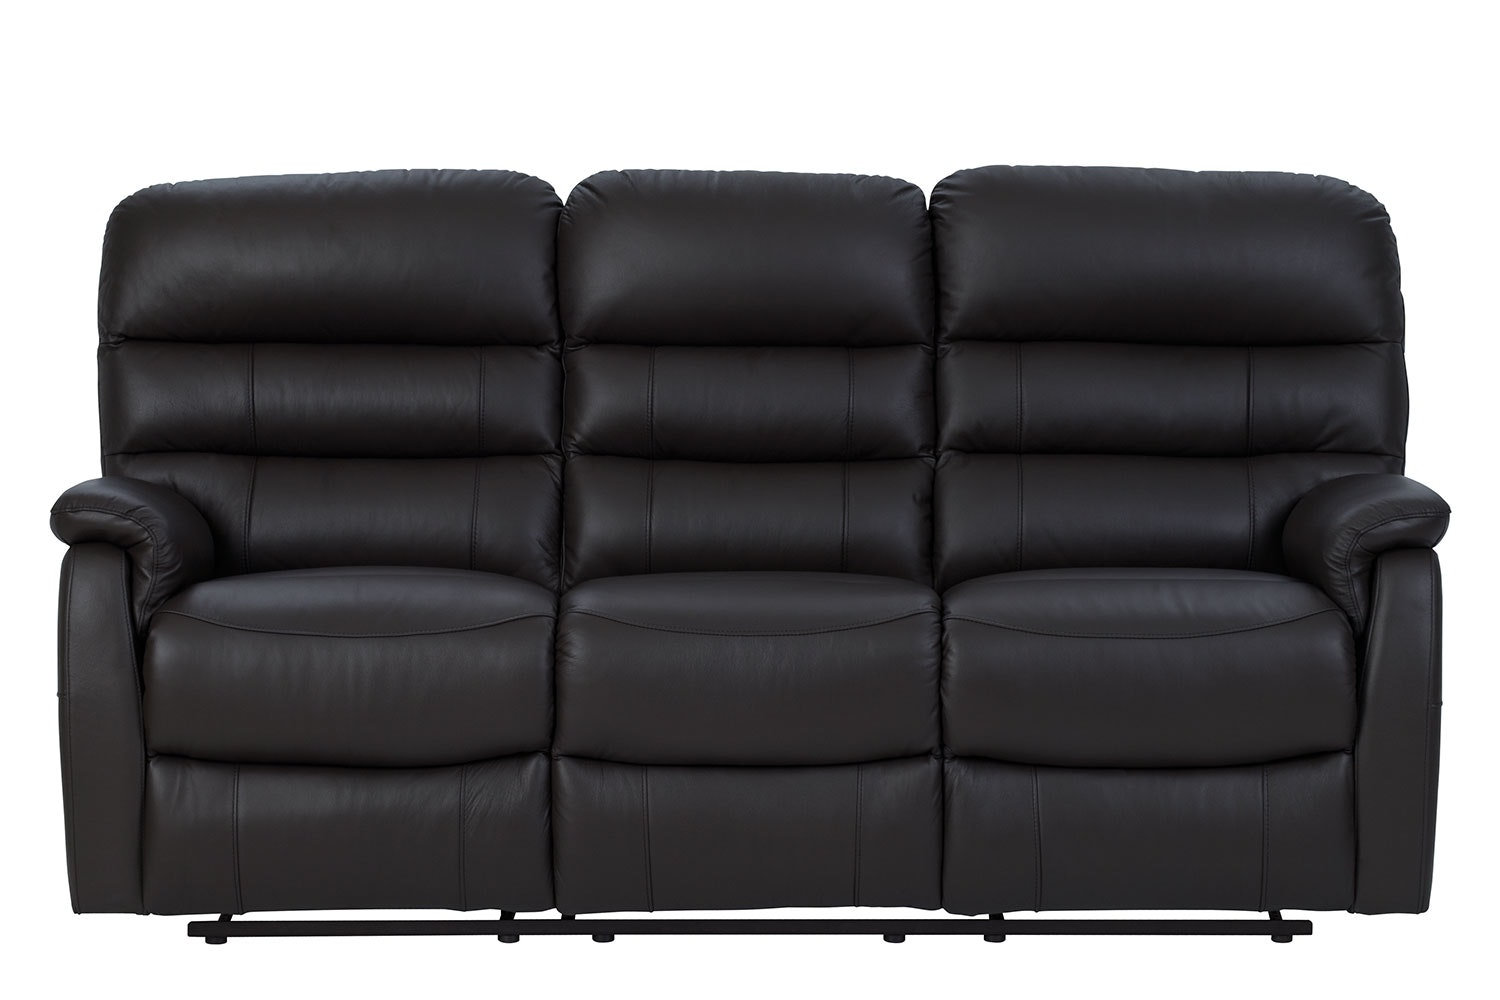 Luna 3 Seater Leather Recliner Sofa By Vivin Harvey Norman New  ~ Three Seater Recliner Sofa